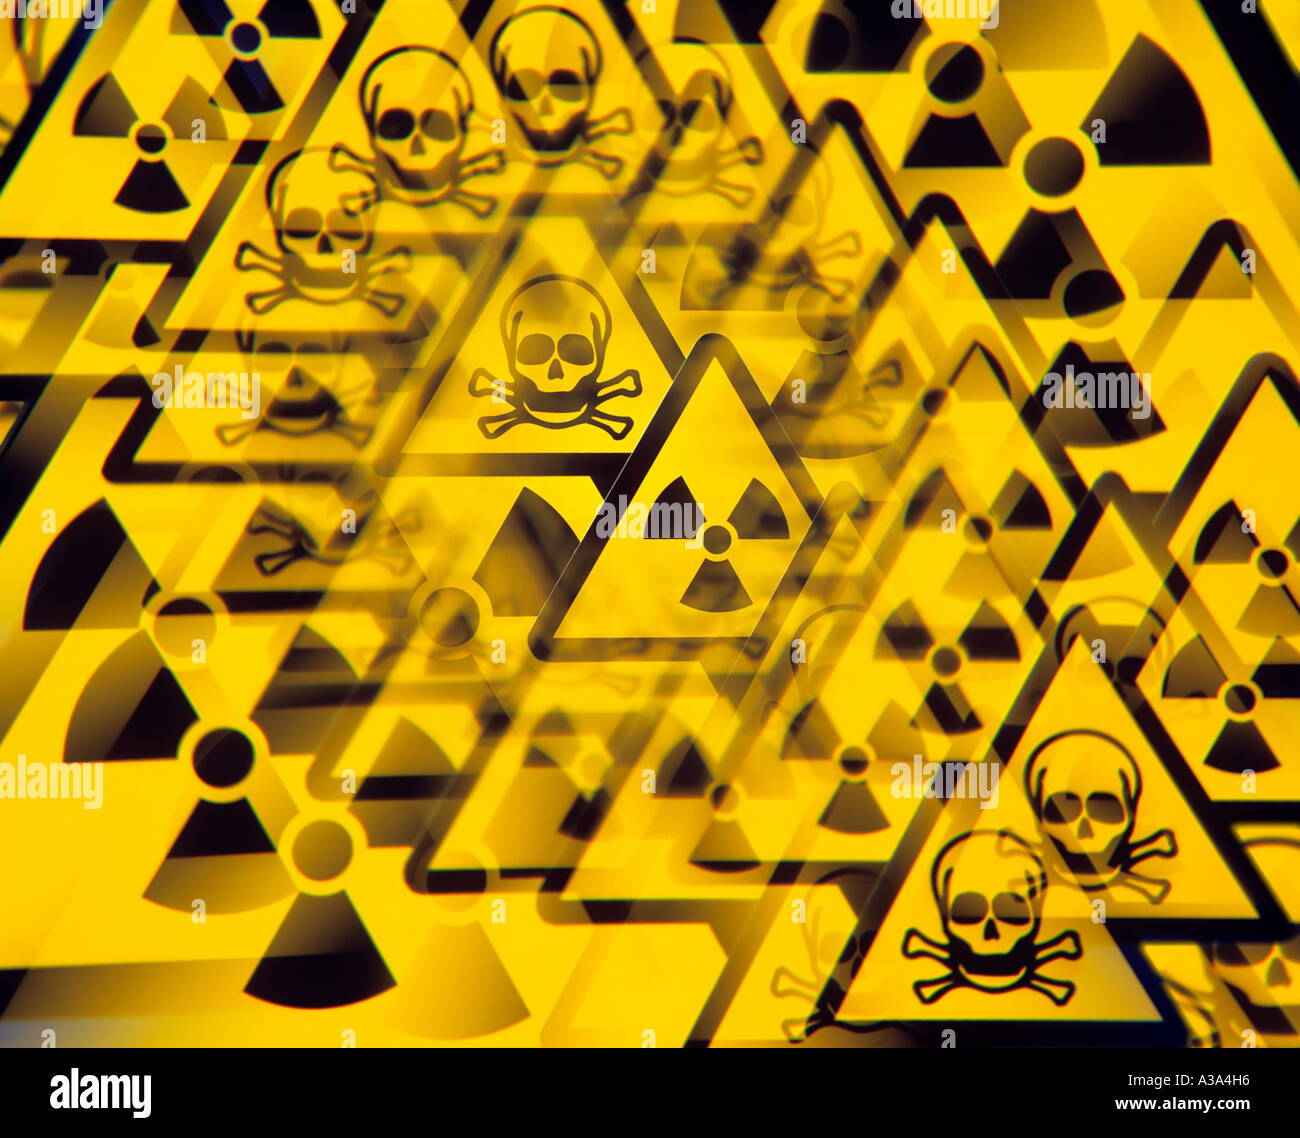 Photograph of hazard warning symbols, including a 'skull and cross bones' image and a trefoil radiation warning sign. - Stock Image